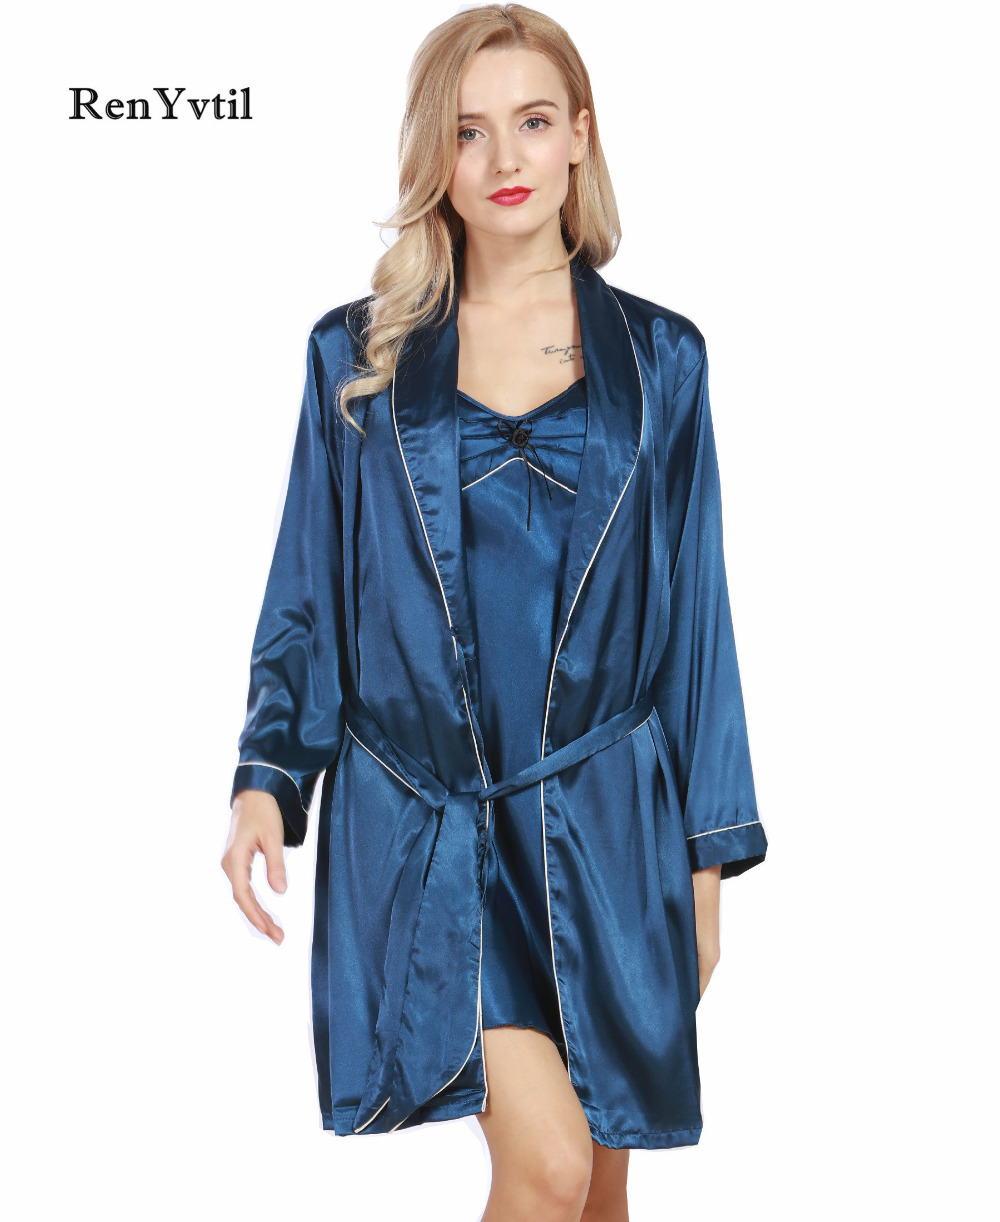 For Sale RenYvtil Women Robe Gown Sets Brand 2017 New Luxury Ladies ...